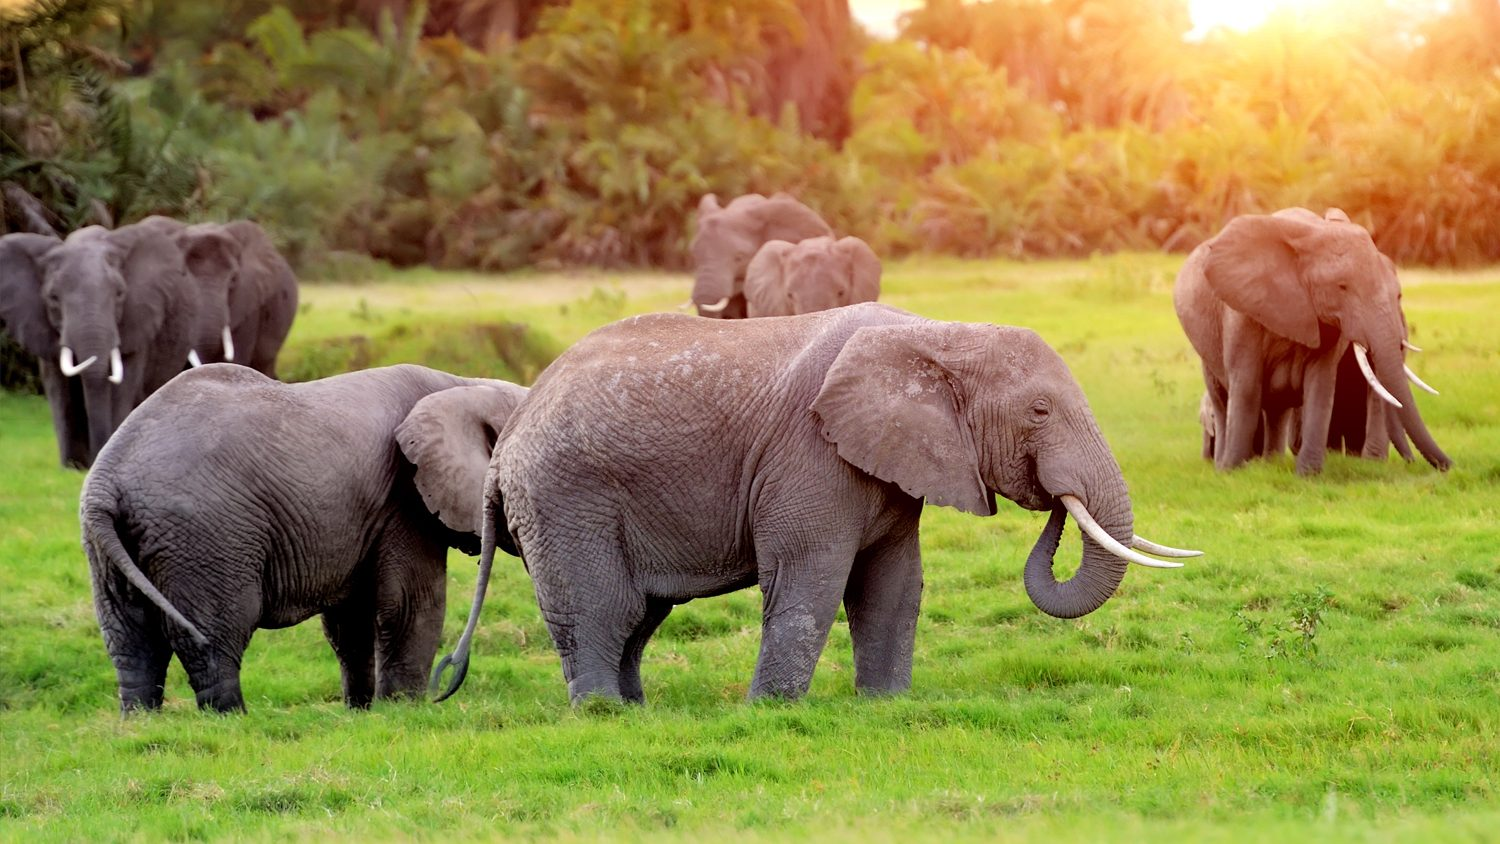 Elephants on game preserve in South Africa